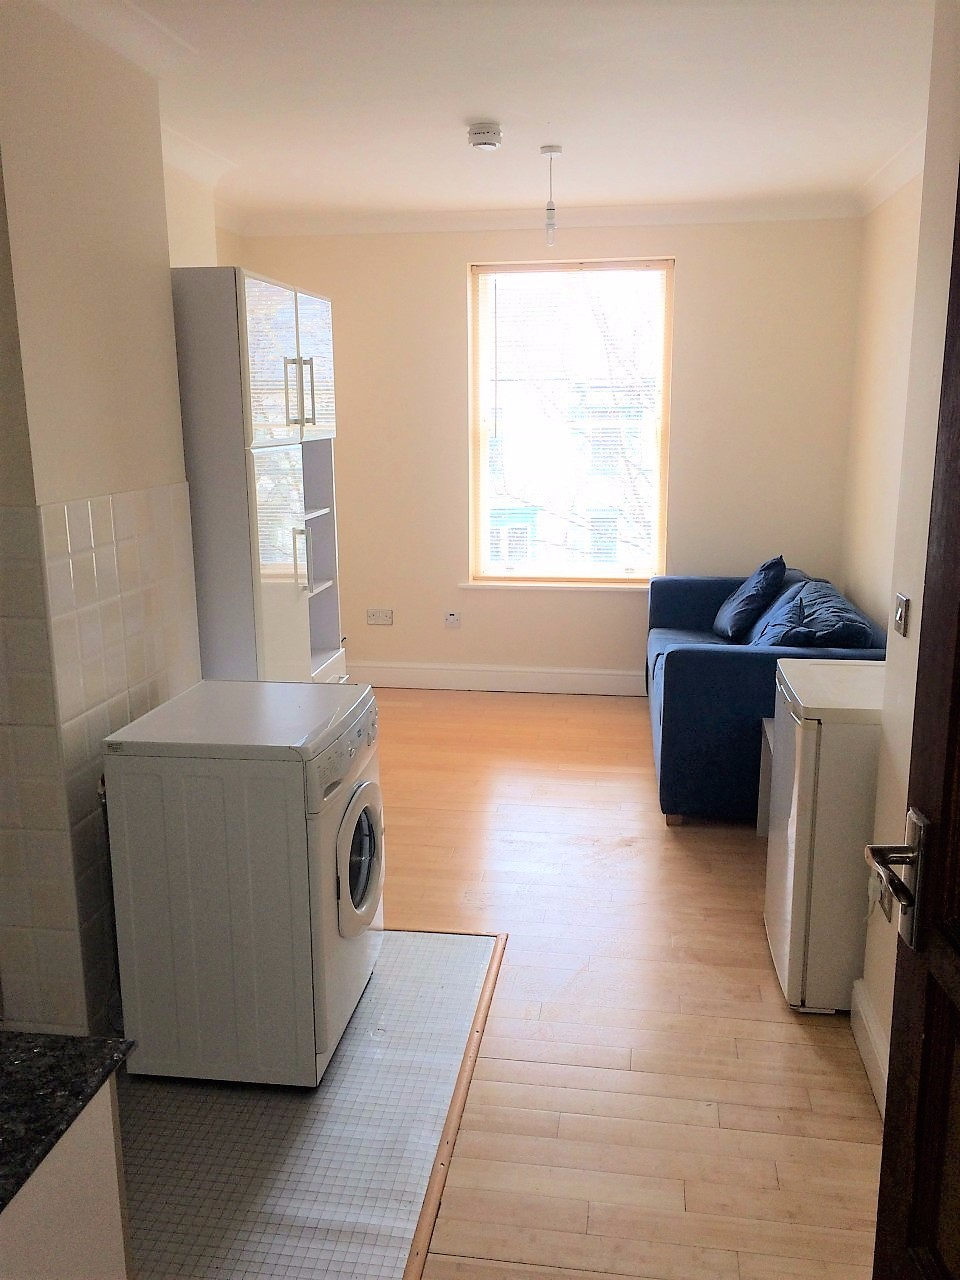 Top Floor Studio Apartment To Let In Hartlepool The